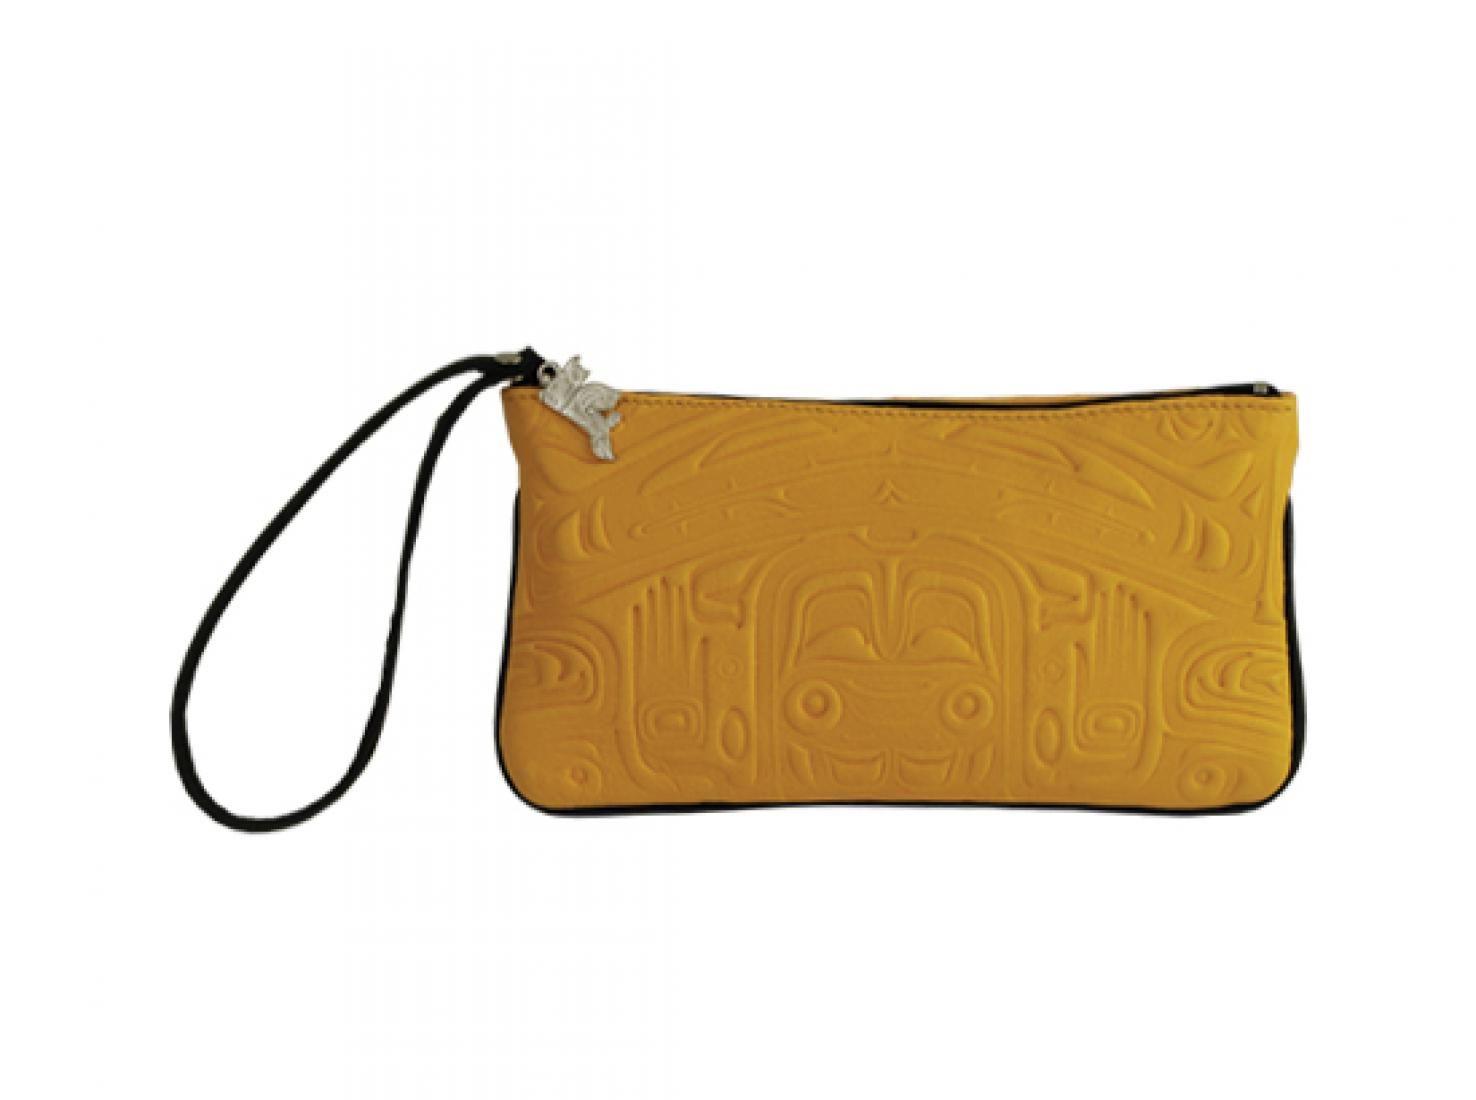 Deer Skin Embossed Wristlet Pouch with Bear Box Design by Clifton Fred, Yellow